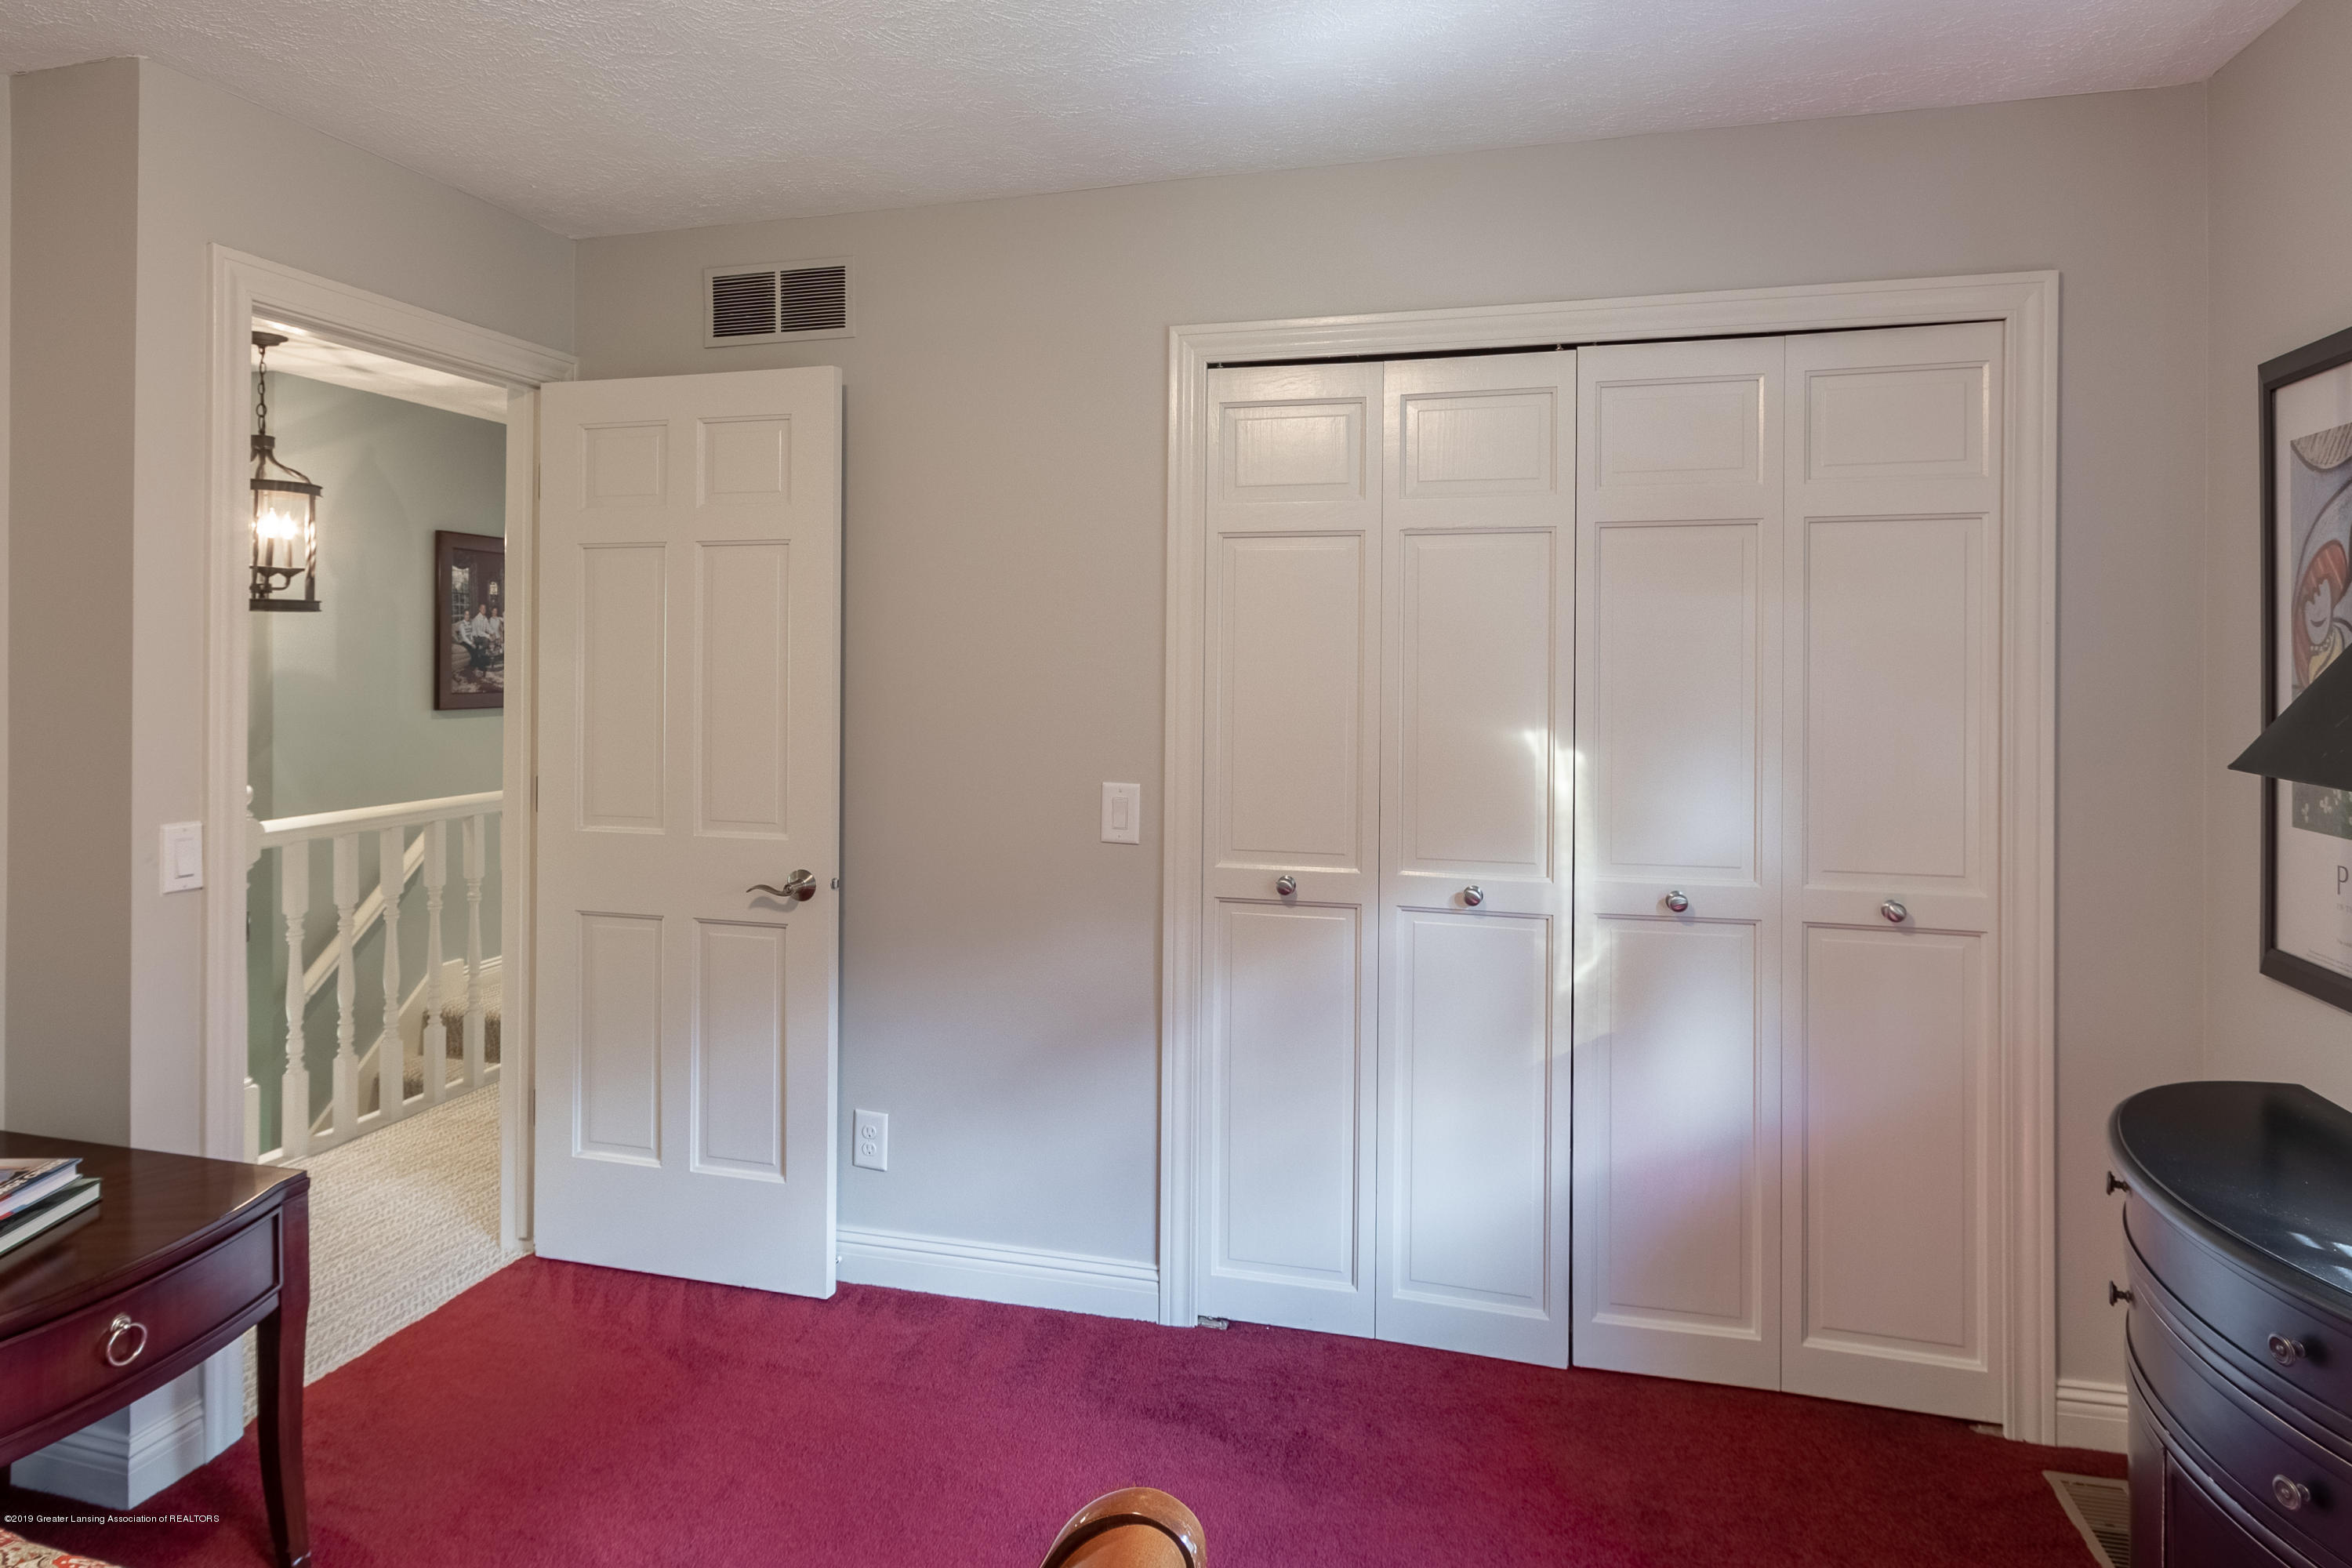 2133 Woodfield Rd - Bedroom - 39